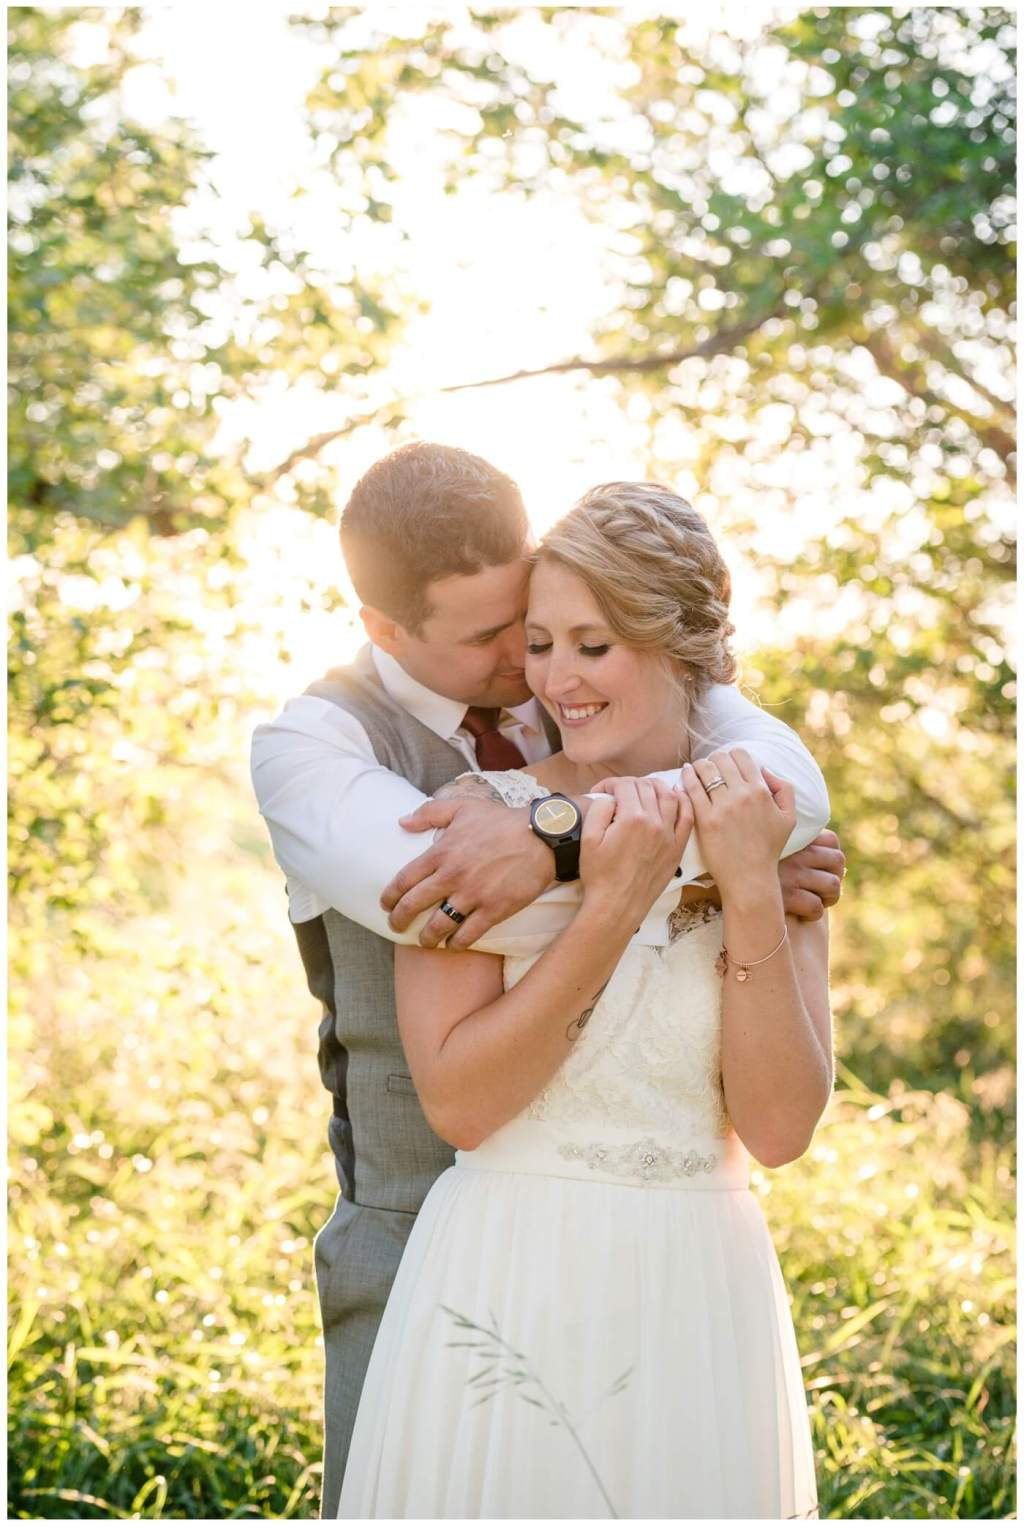 Regina Wedding Photographer - Andrew-Stephanie - Golden Hour Portraits